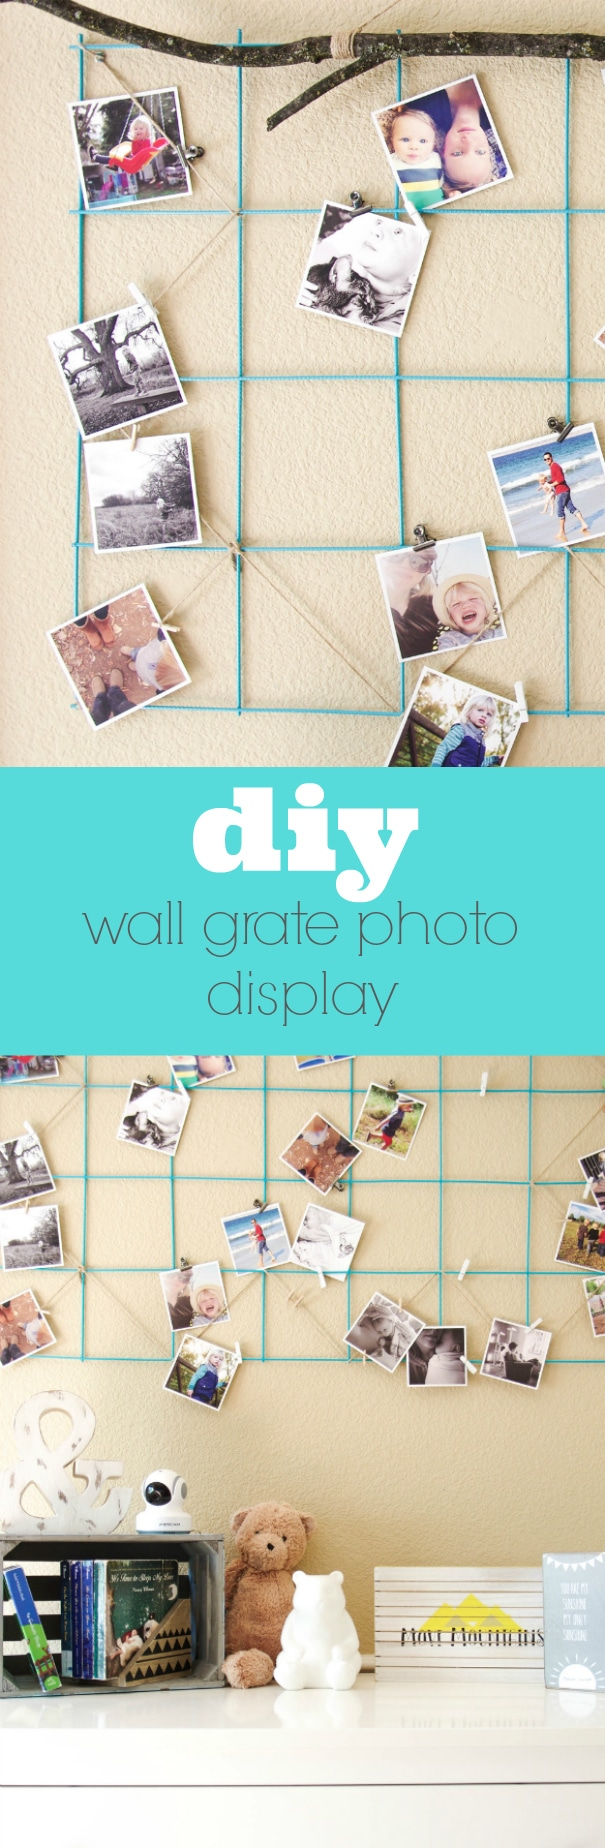 Easy DIY Wall Grate Photo Display via @theforkedspoon  #diy #photodisplay #decor #crafts #picturedisplay #theforkedspoon